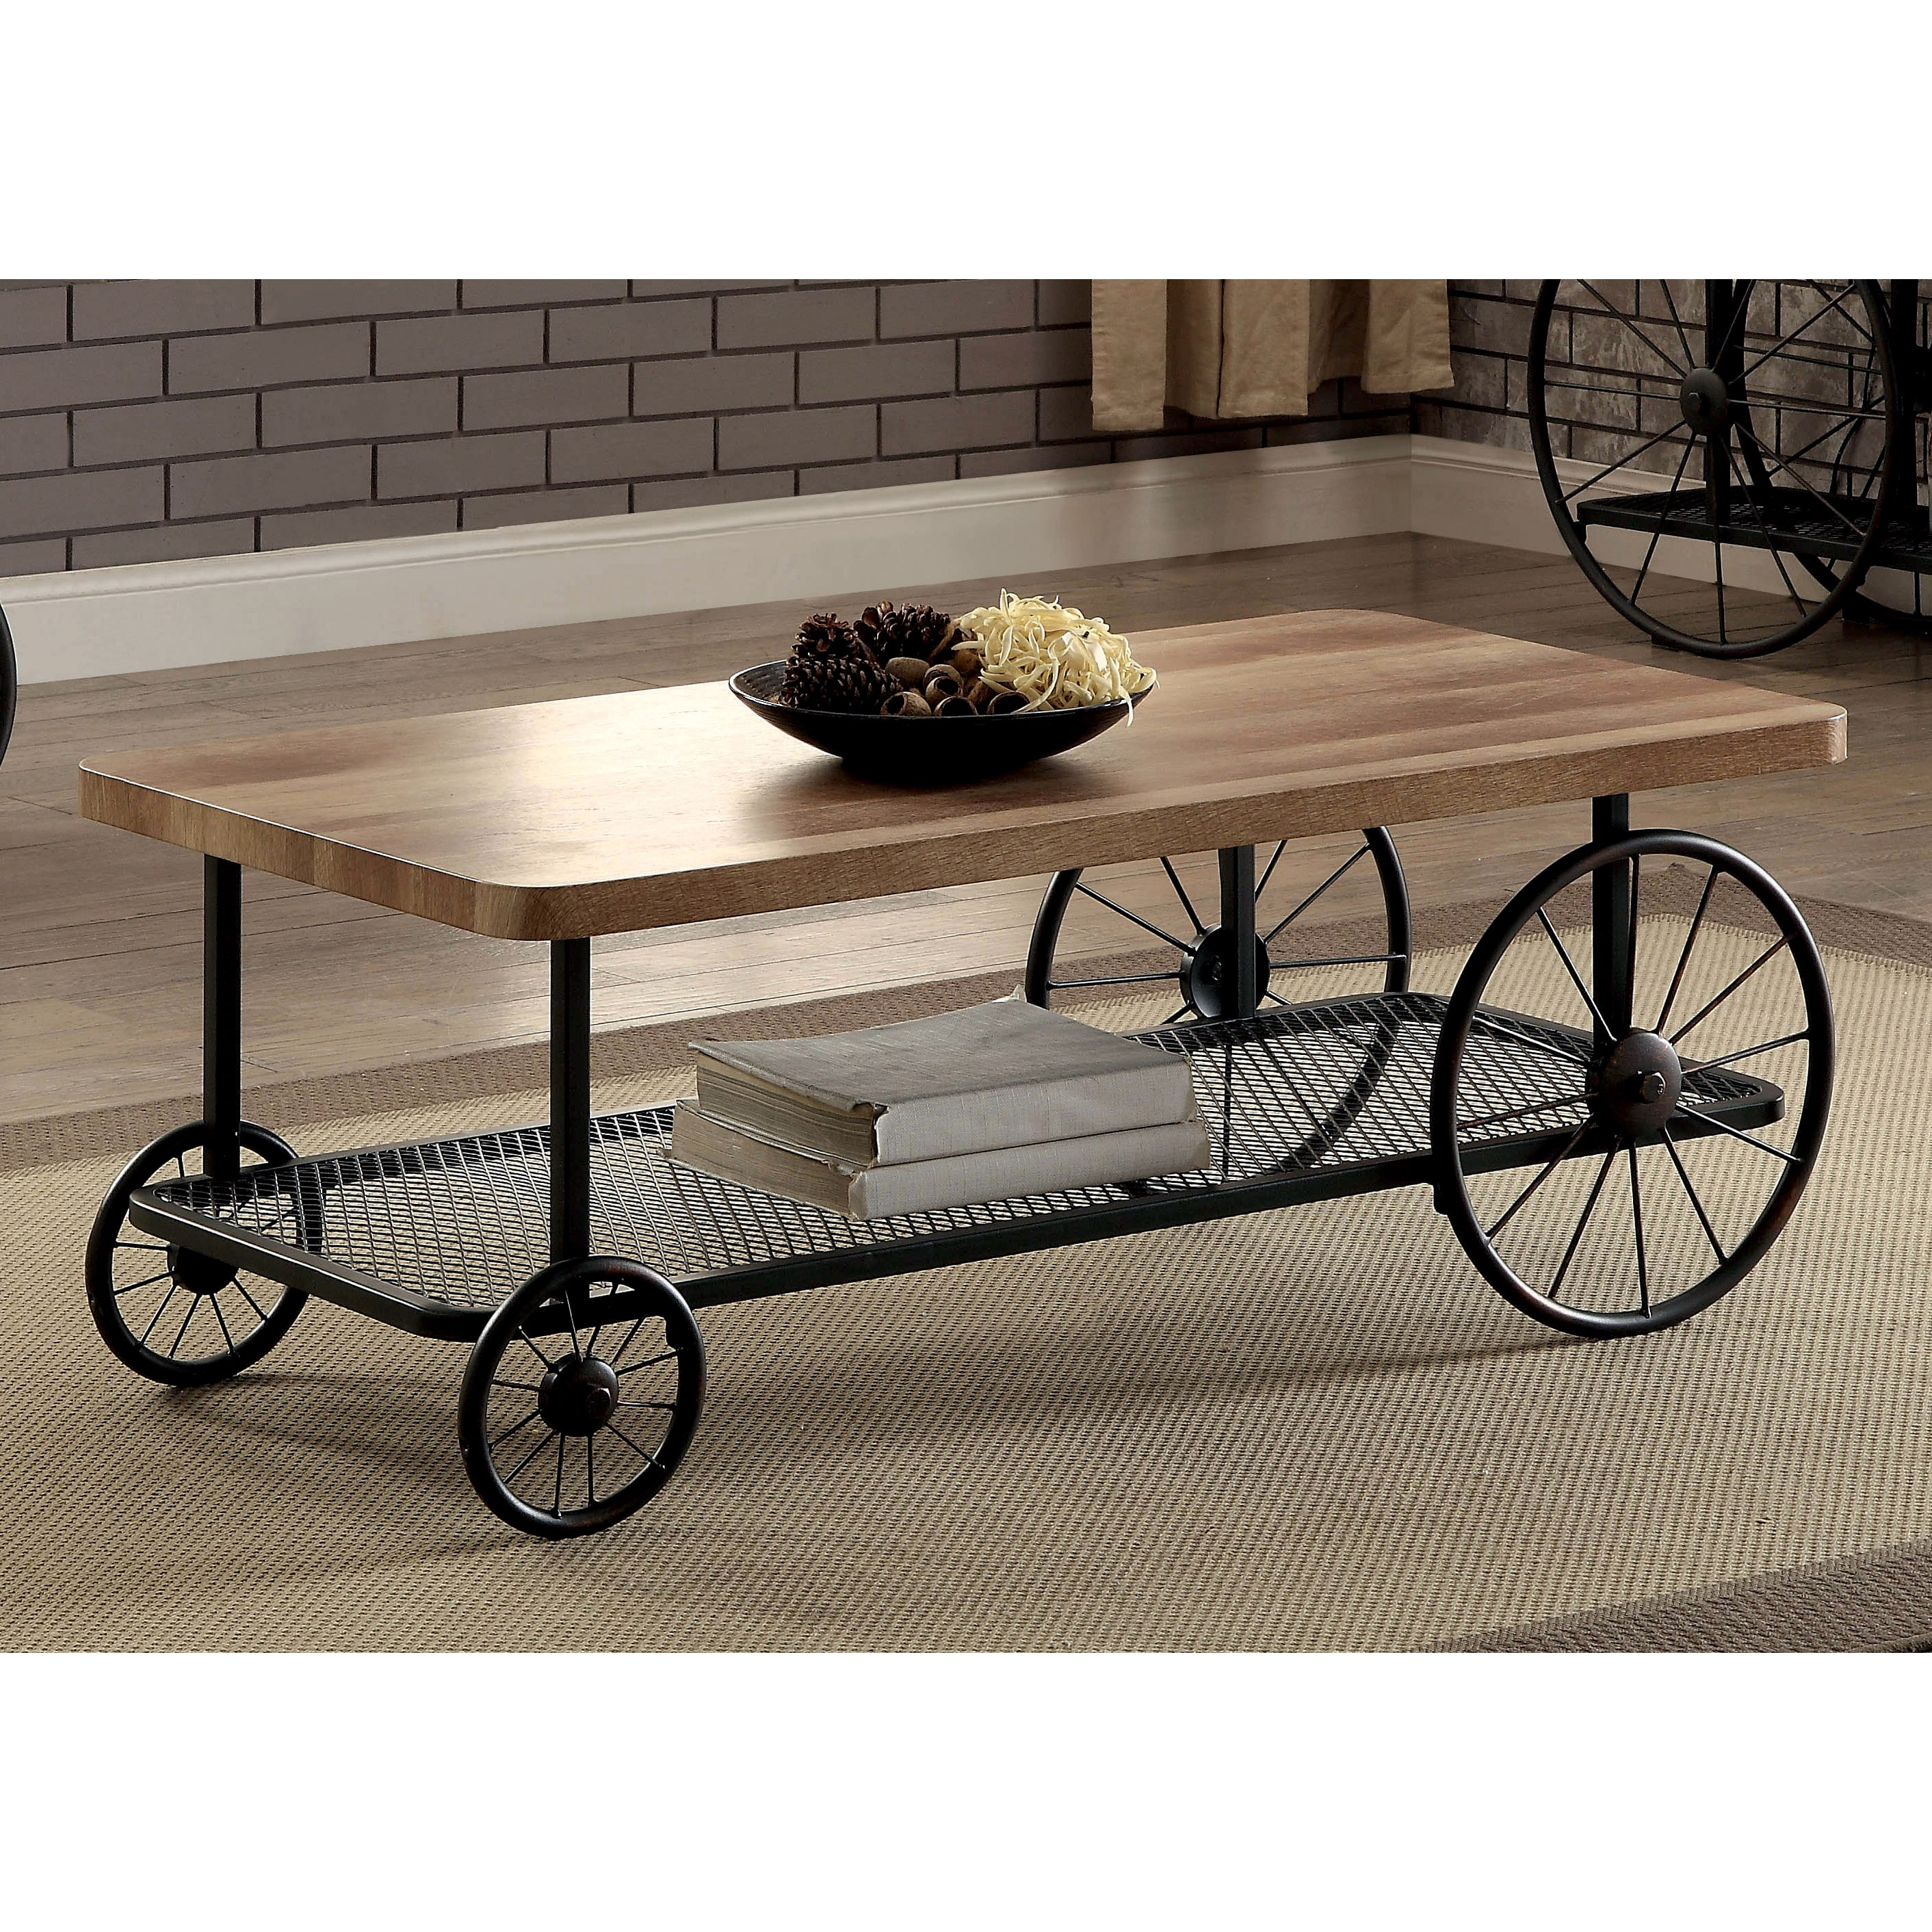 Furniture of America Galen Industrial Style Sand Black Wheeled